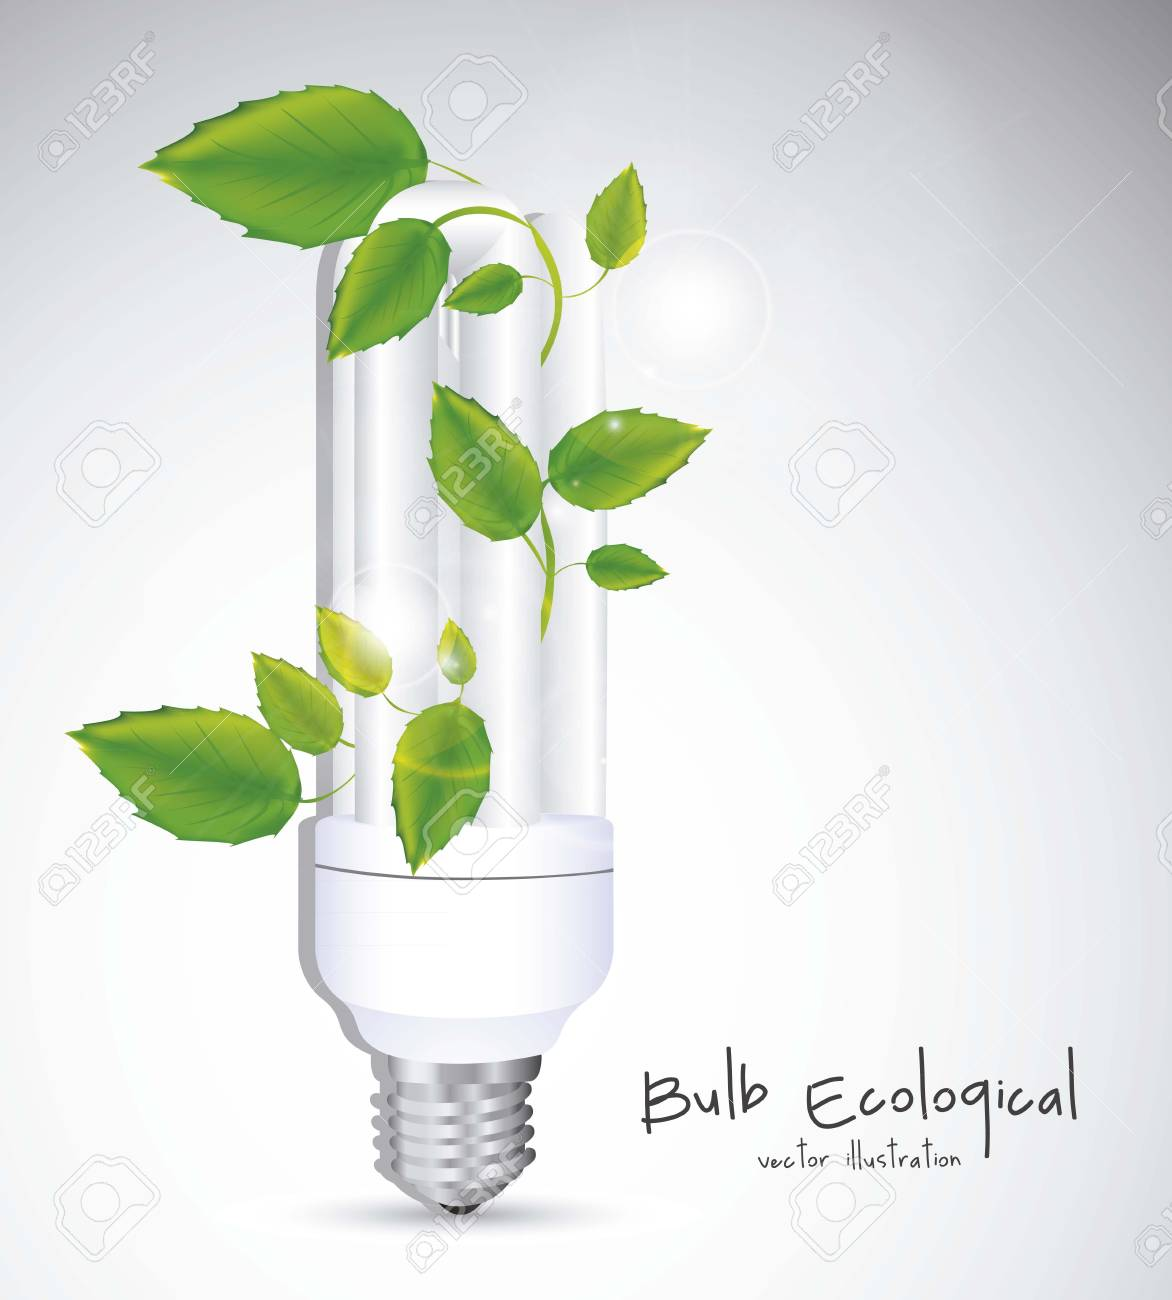 Illustration of eco bulb surrounded by plants and leaves, vector illustration Stock Vector - 16819424